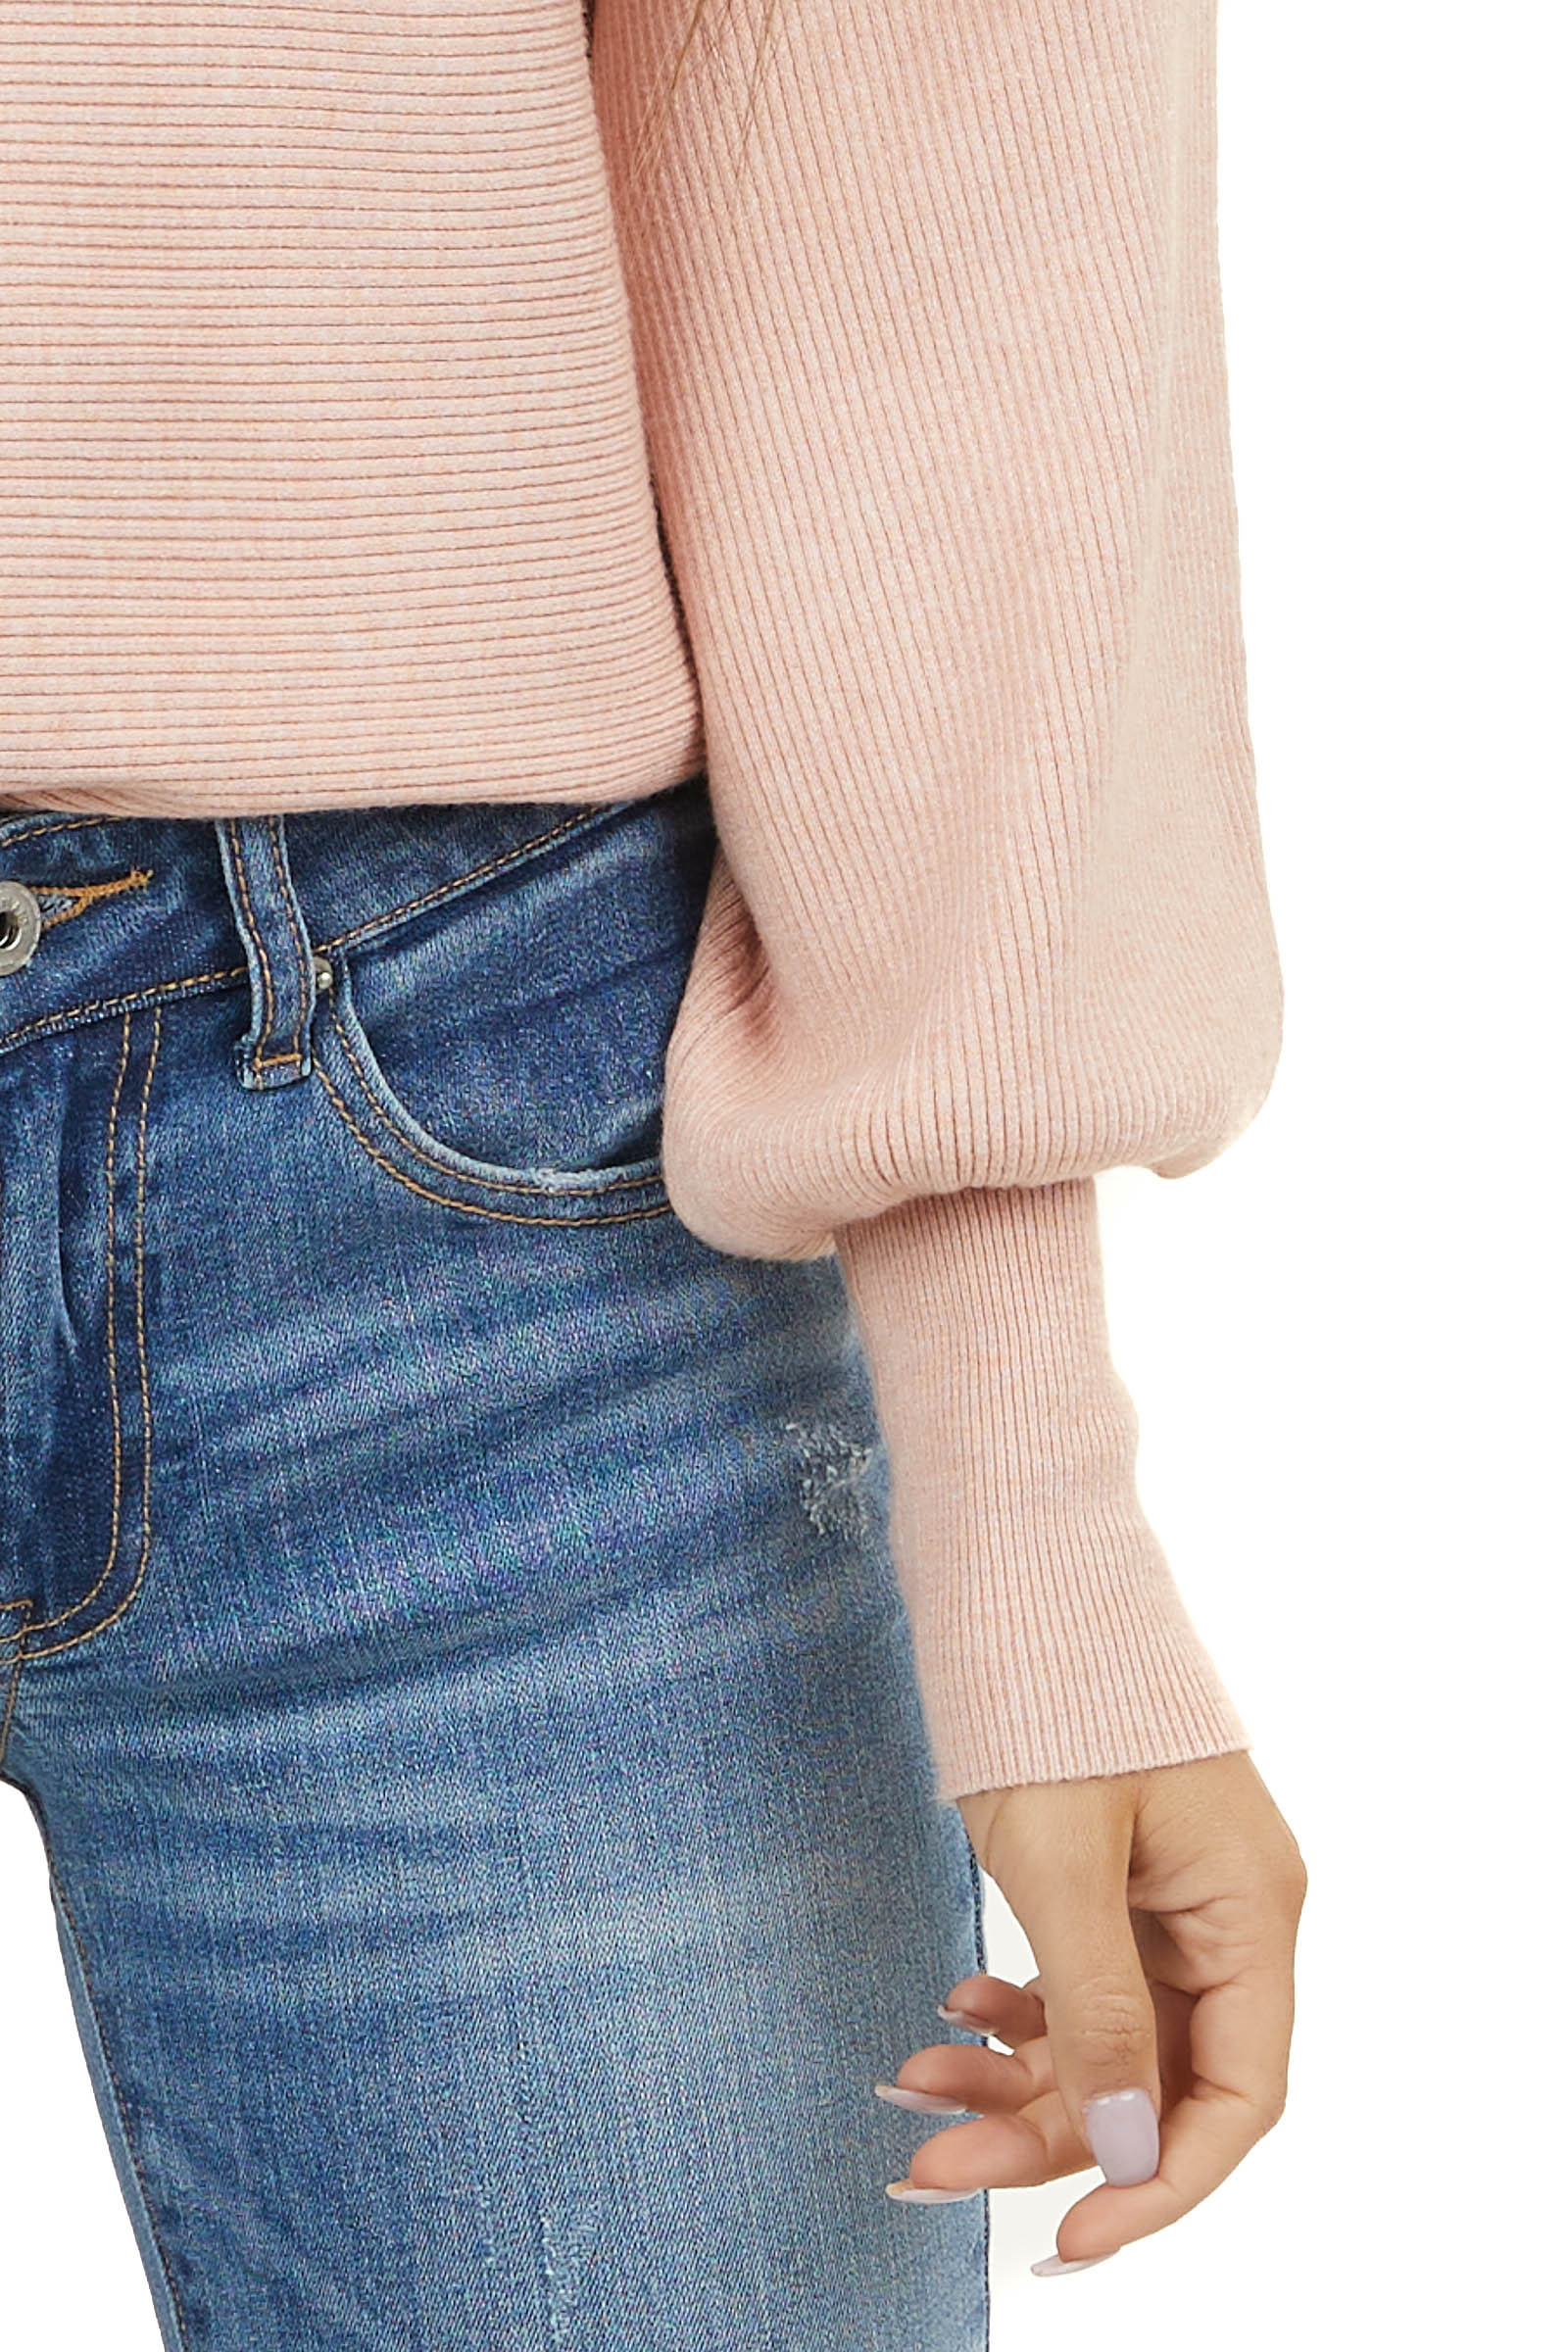 Blush Ribbed Knit Sweater with Long Bell Sleeves